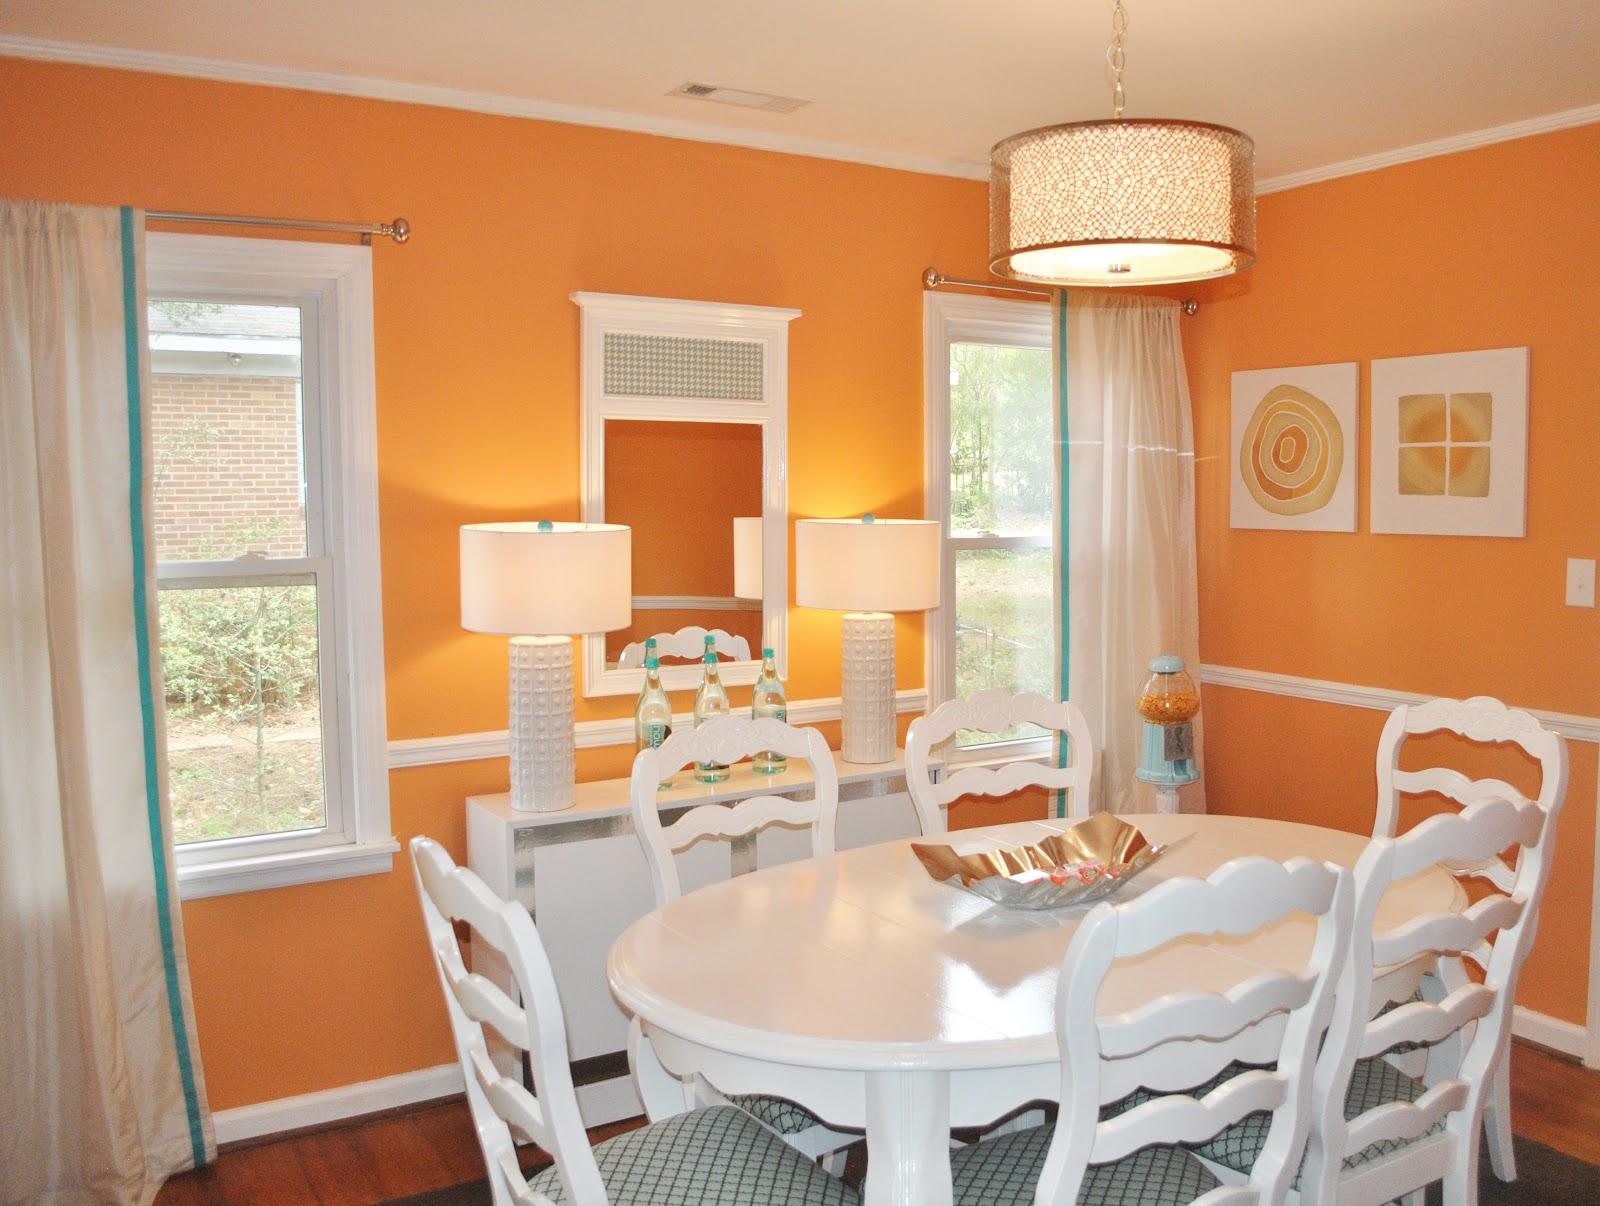 Bright Orange Dining Room Also Ears In The Pictures Below Wooden Table And Chairs Combine With Chandelier Red Rose On Makes This